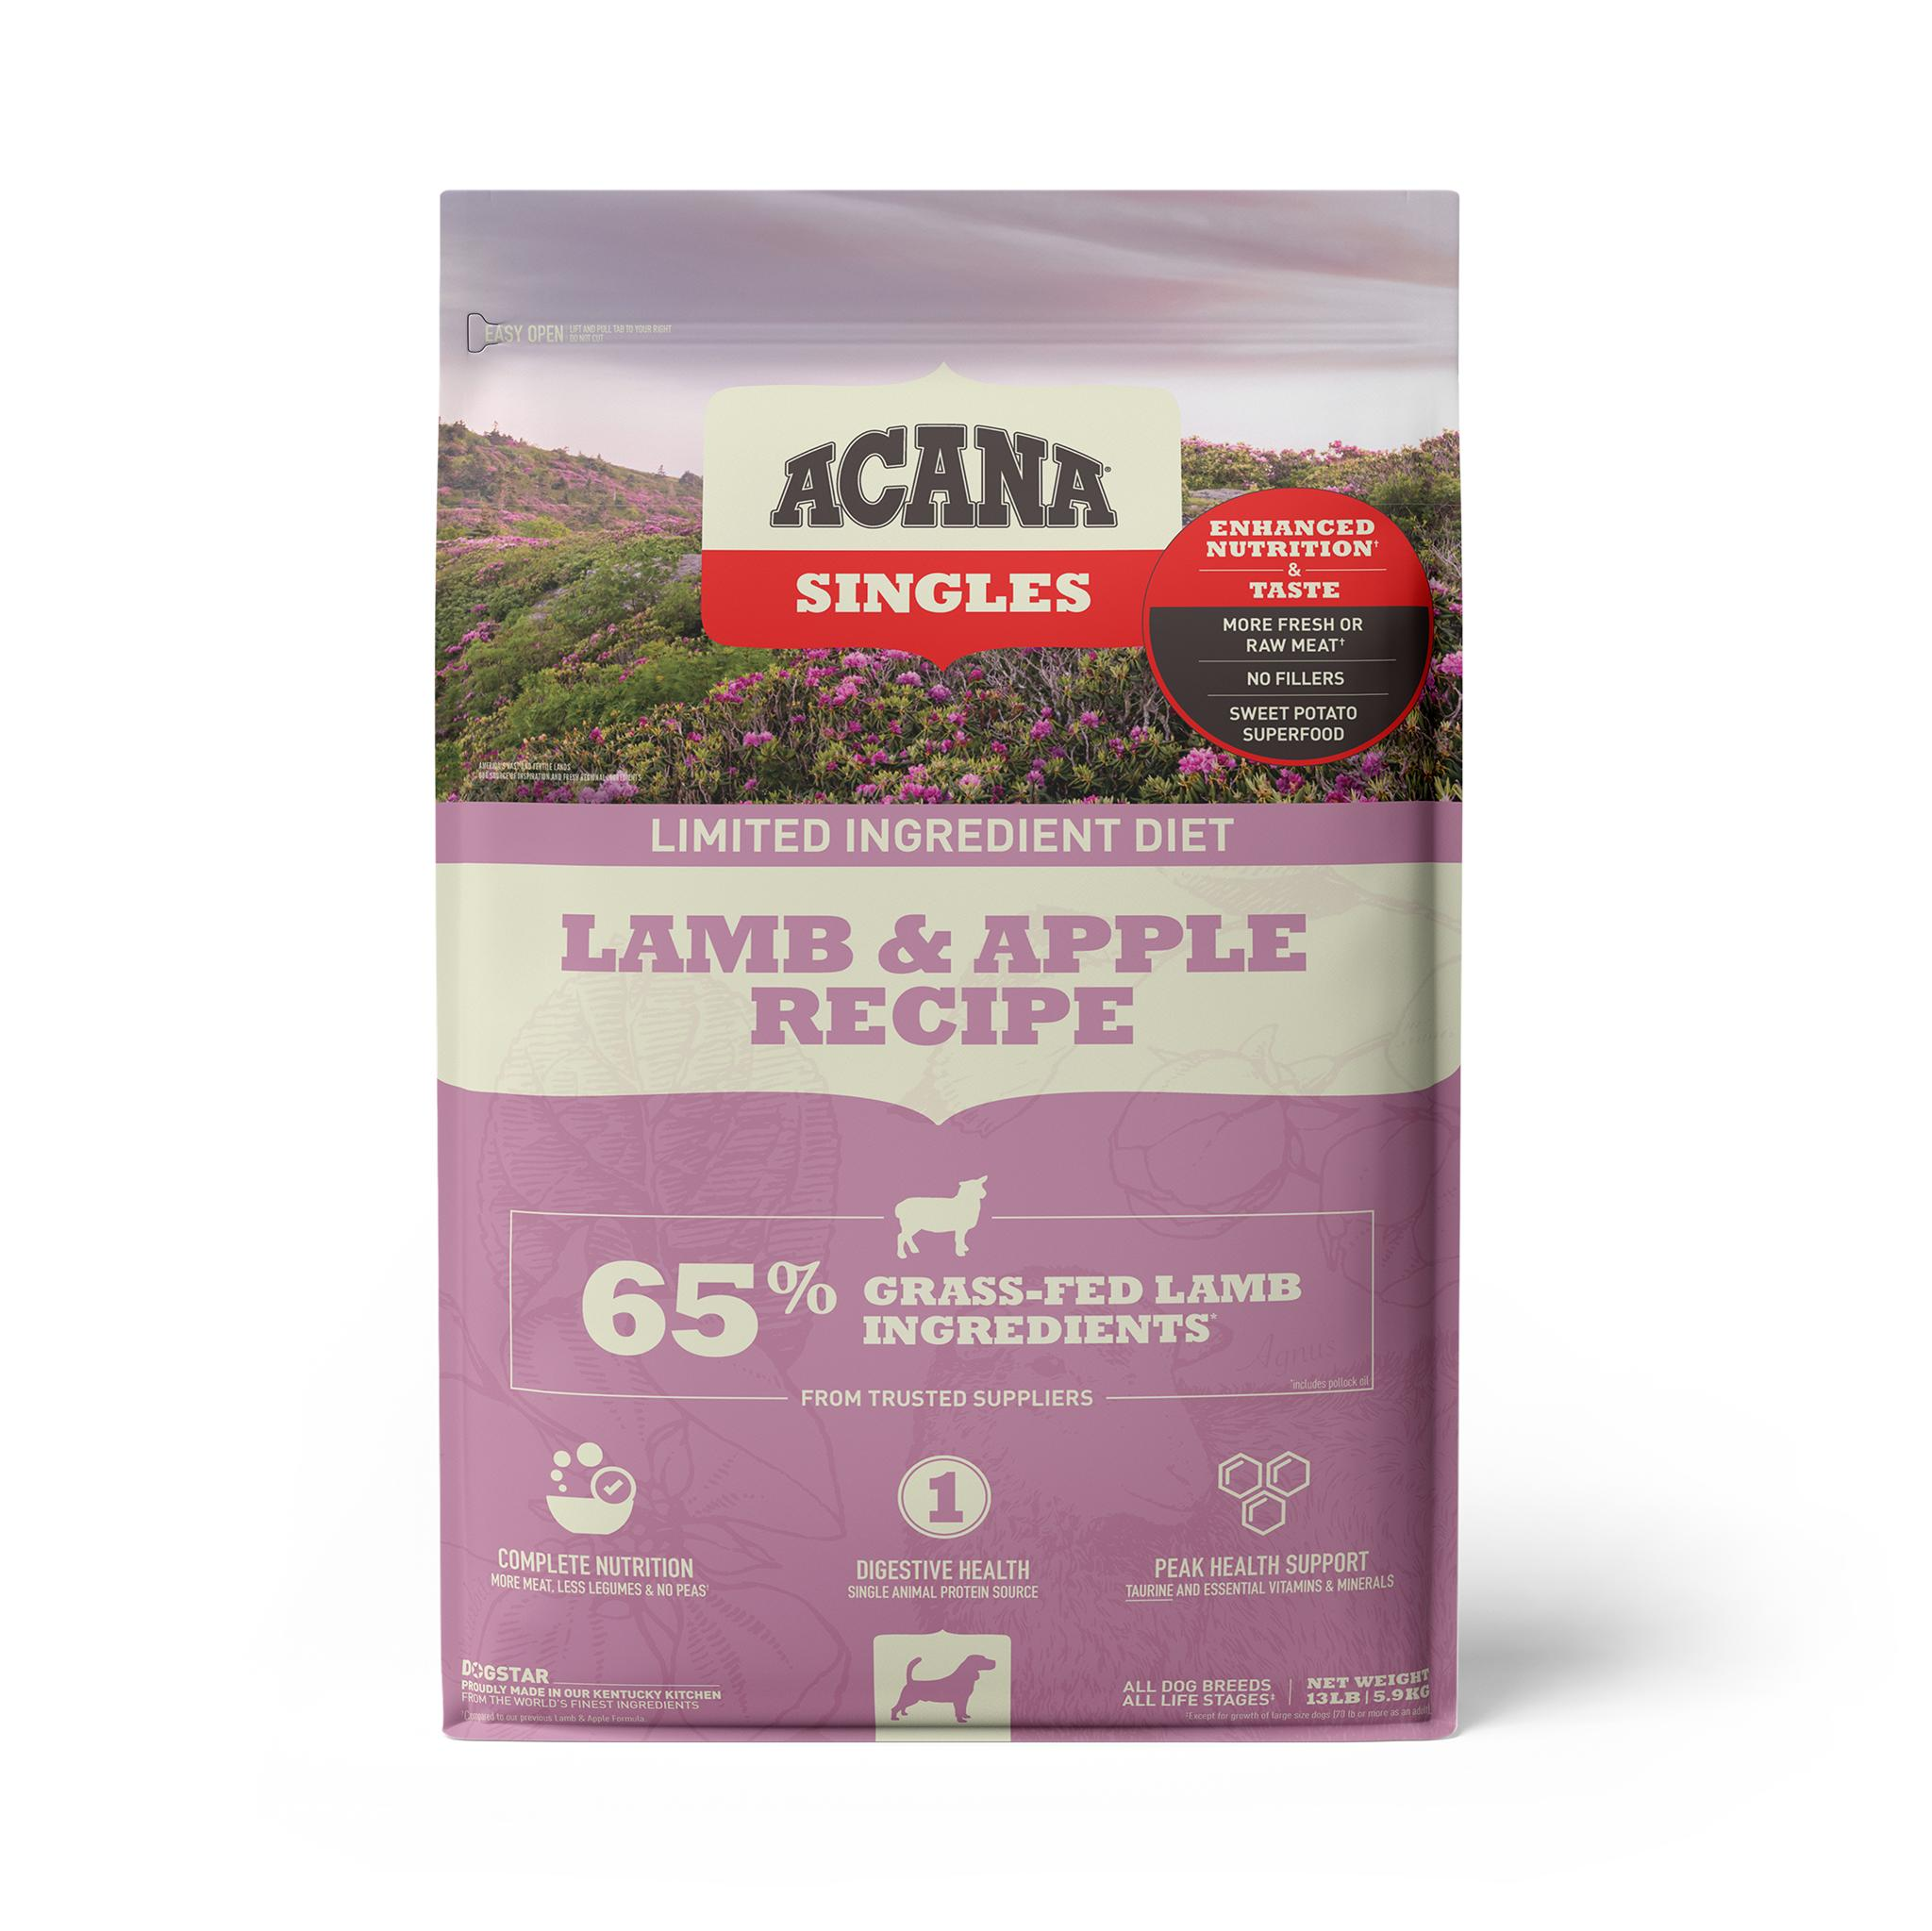 ACANA Singles Limited Ingredient Lamb & Apple Grain-Free Dry Dog Food, 13-lb bag